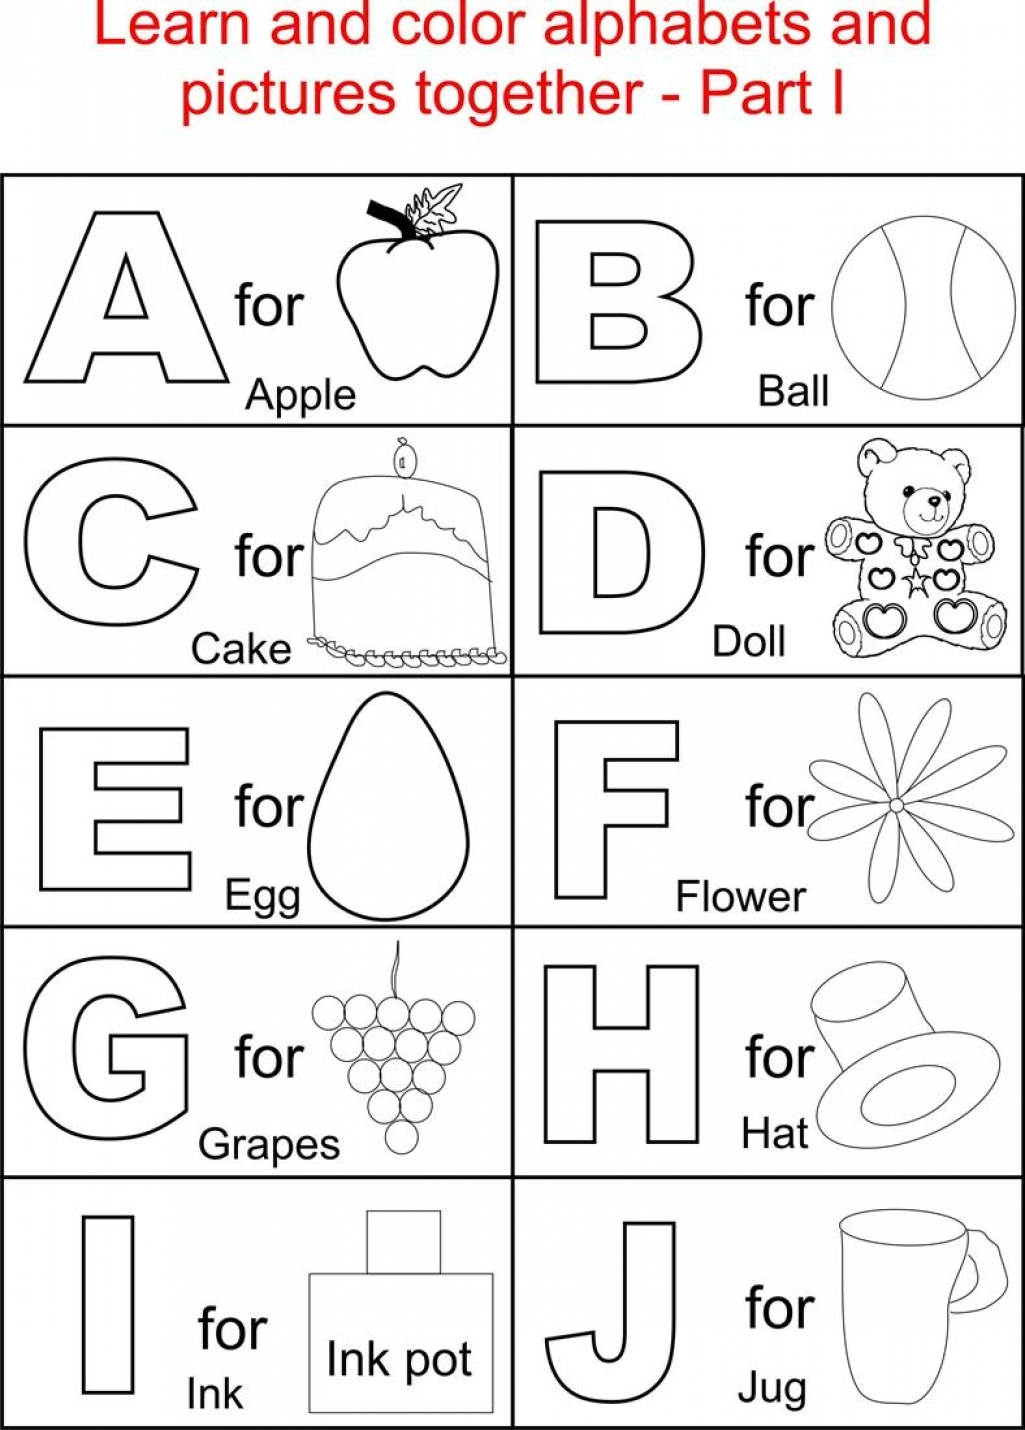 Coloring Pages Preschool Coloring Pages Alphabet preschool alphabet coloring pages eassume com mr printables